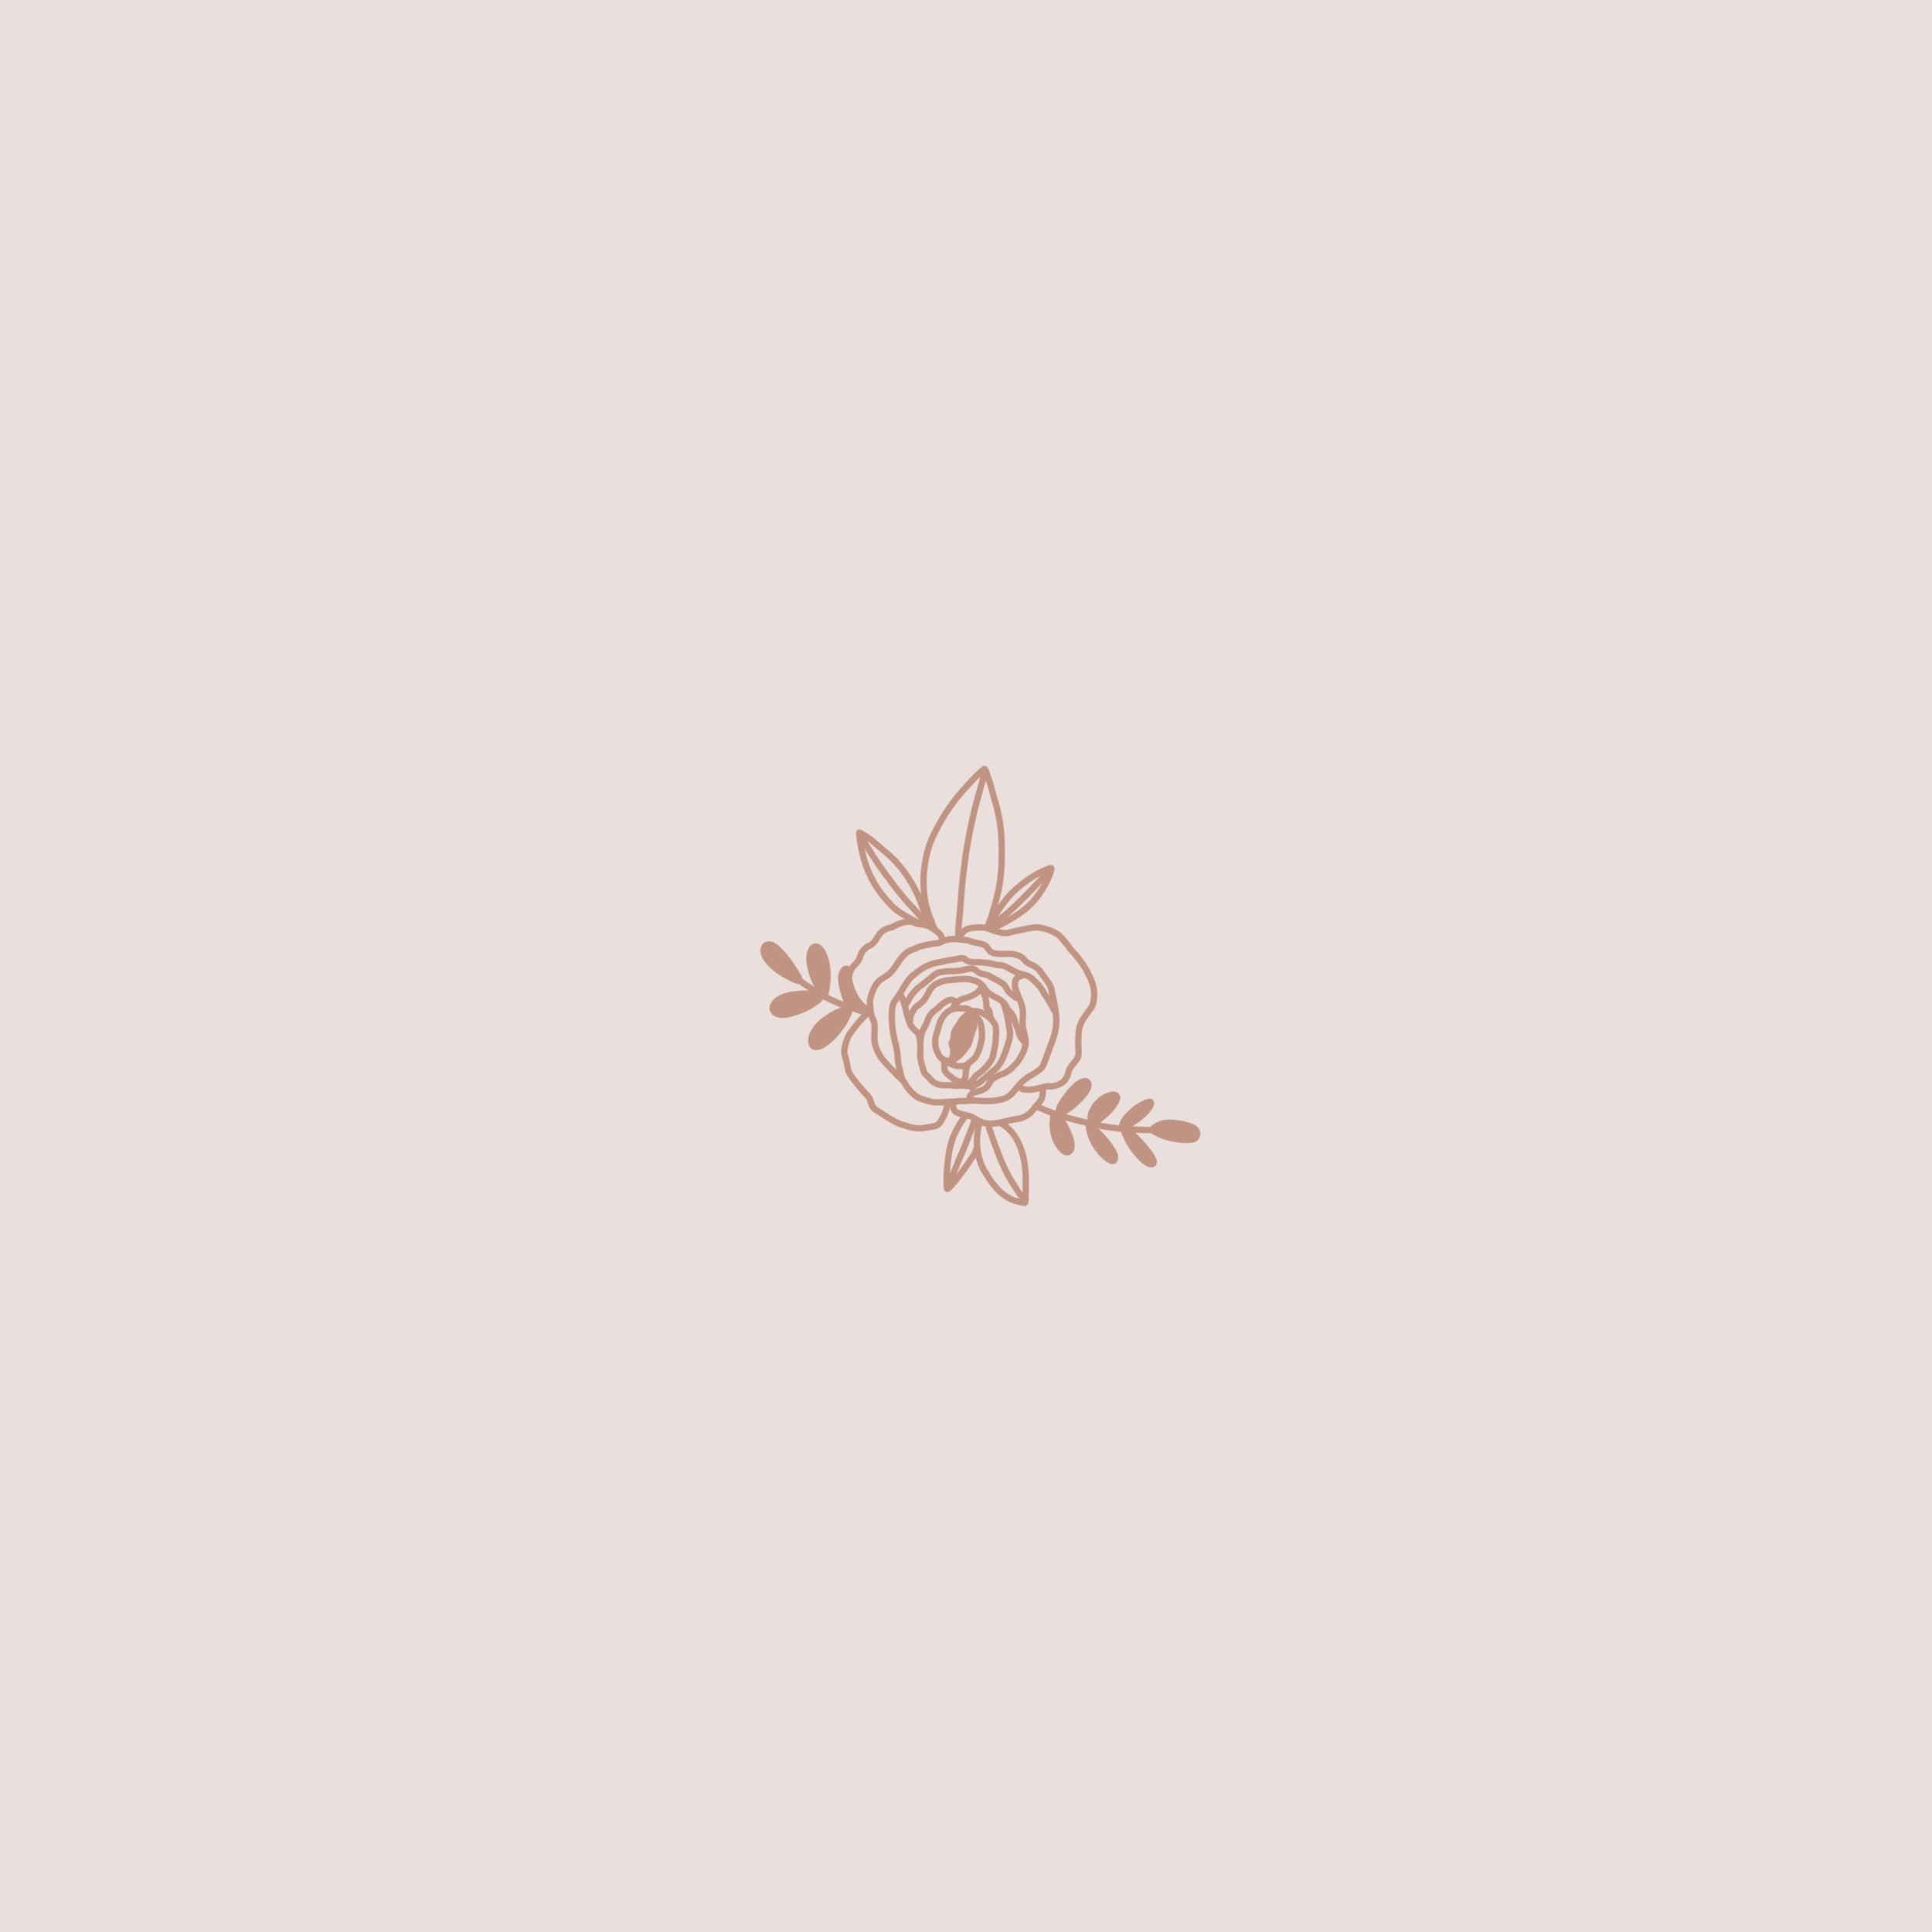 rose illustration. tattoo. logo icon